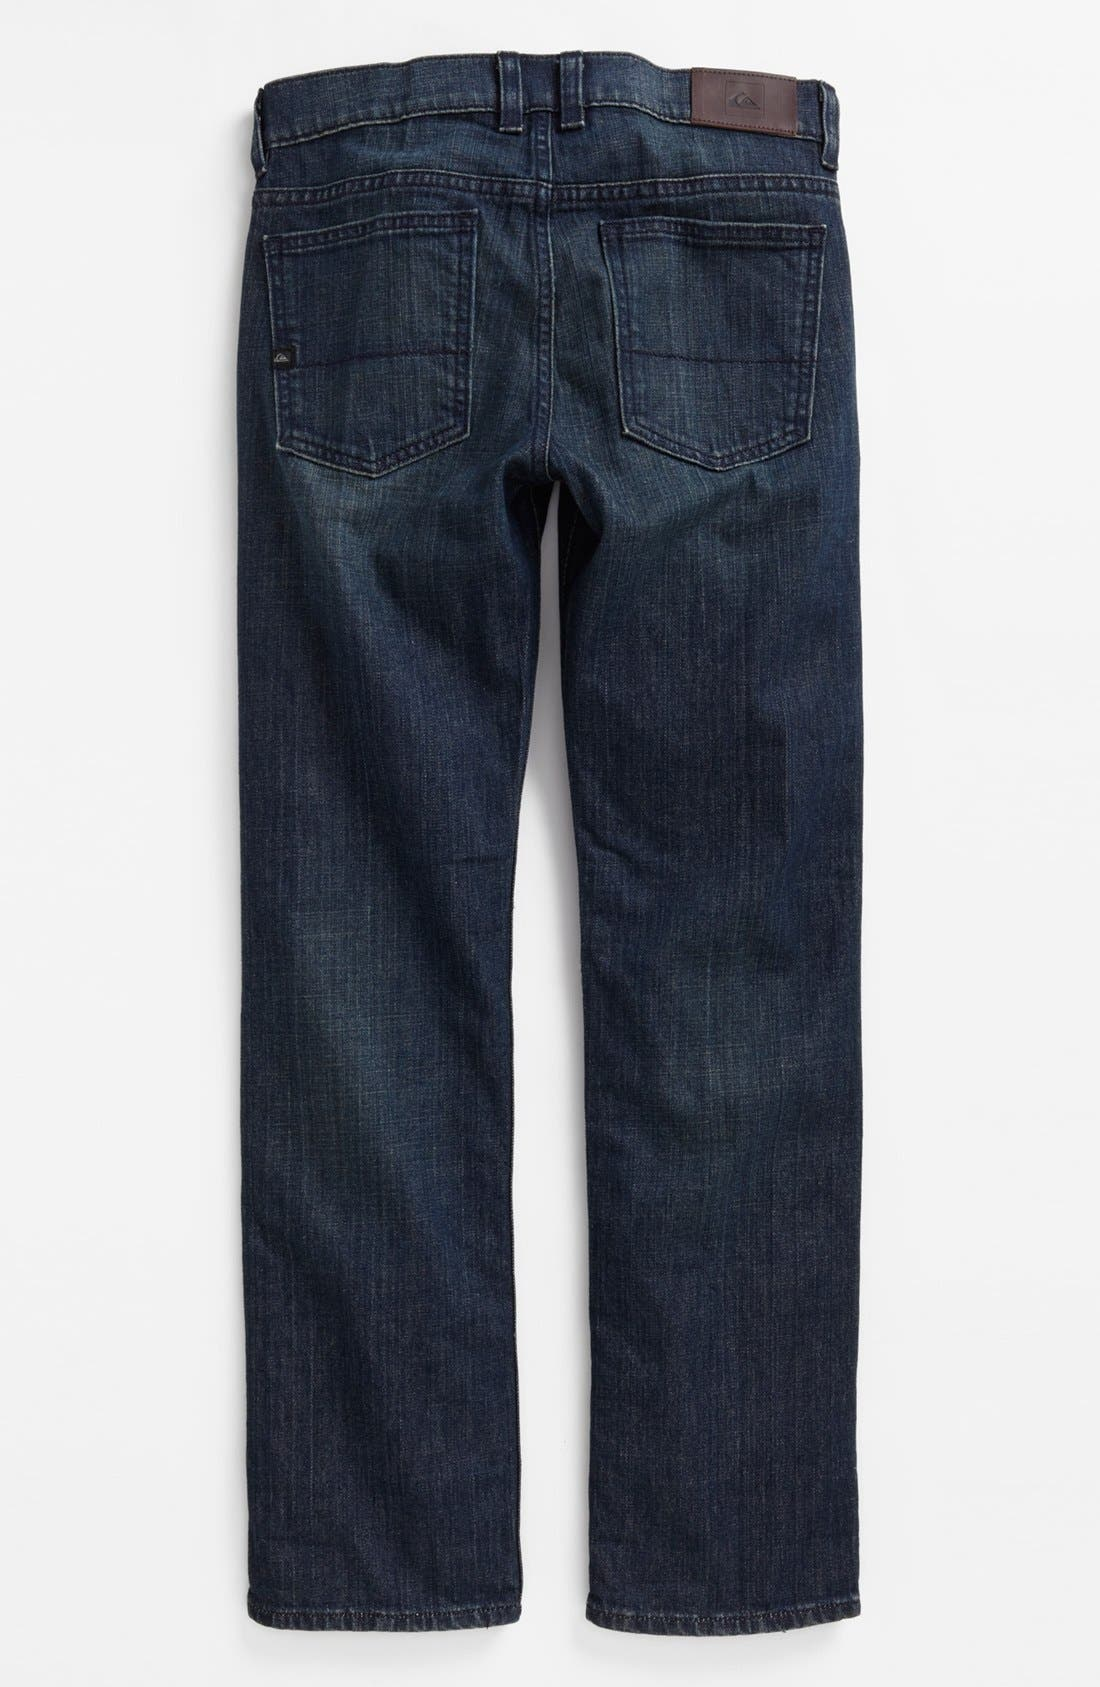 Alternate Image 1 Selected - Quiksilver 'Revolver' Straight Leg Jeans (Big Boys)